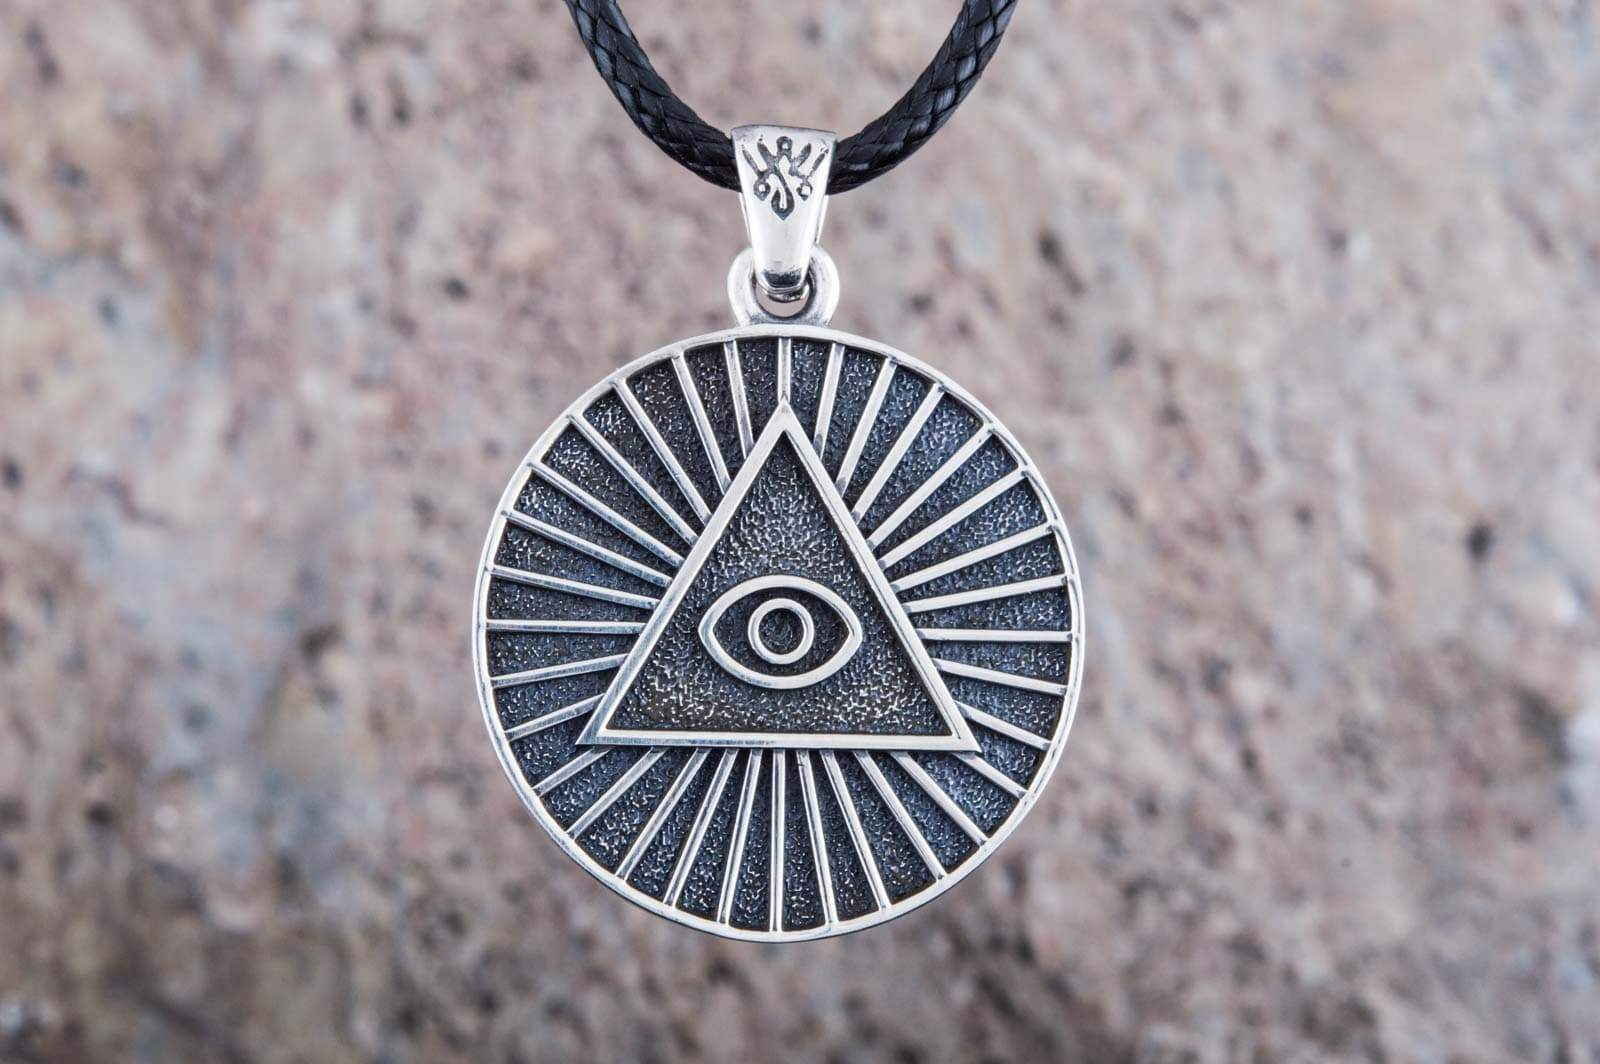 Pendants & Necklaces Masonic All Seeing Eye Sterling Silver Handmade Pendant Ancient Treasures Ancientreasures Viking Odin Thor Mjolnir Celtic Ancient Egypt Norse Norse Mythology